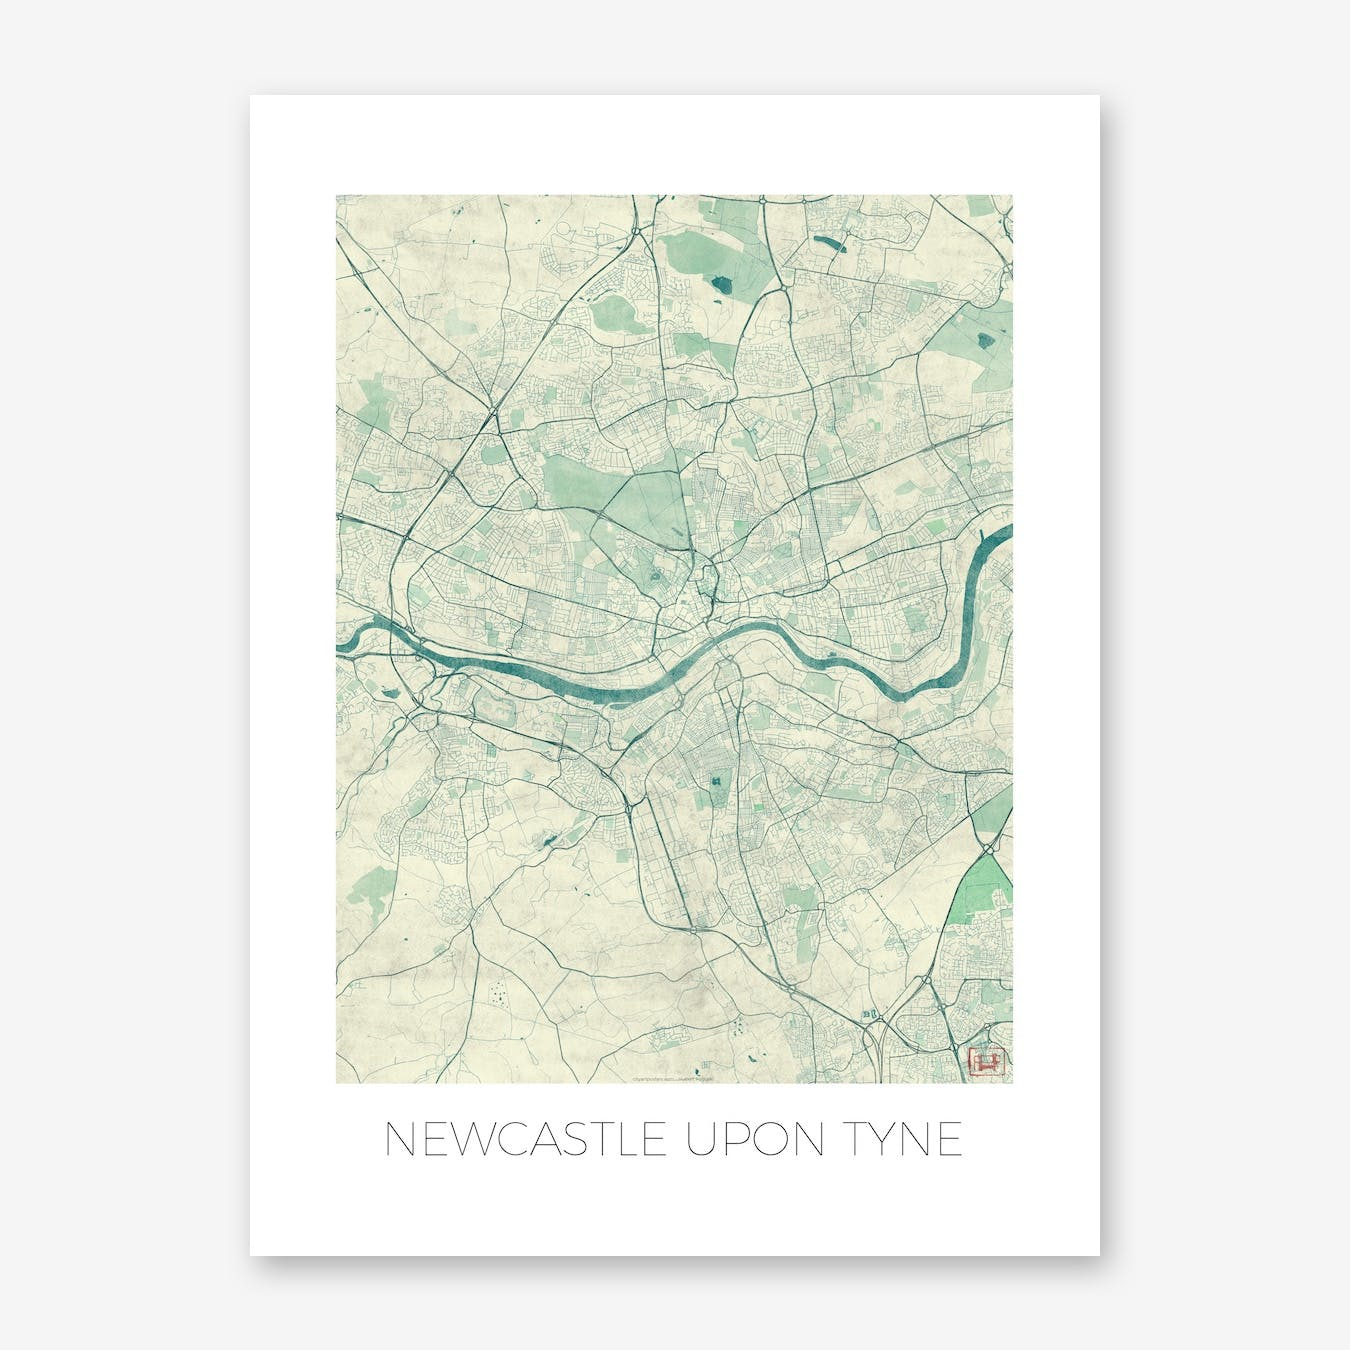 Newcastle Upon Tyne Map Vintage in Blue